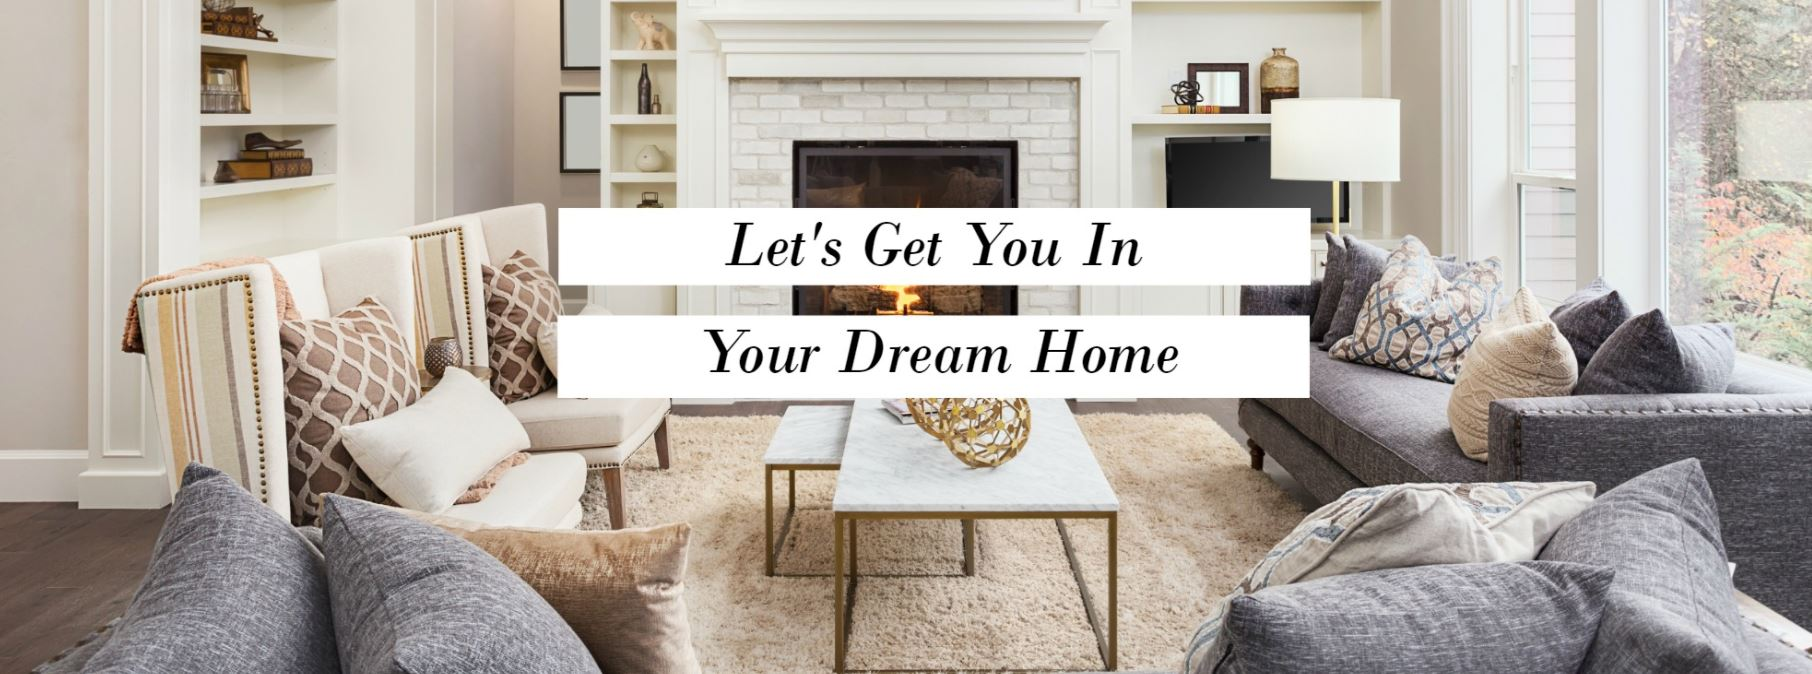 get you in your dream home.JPG